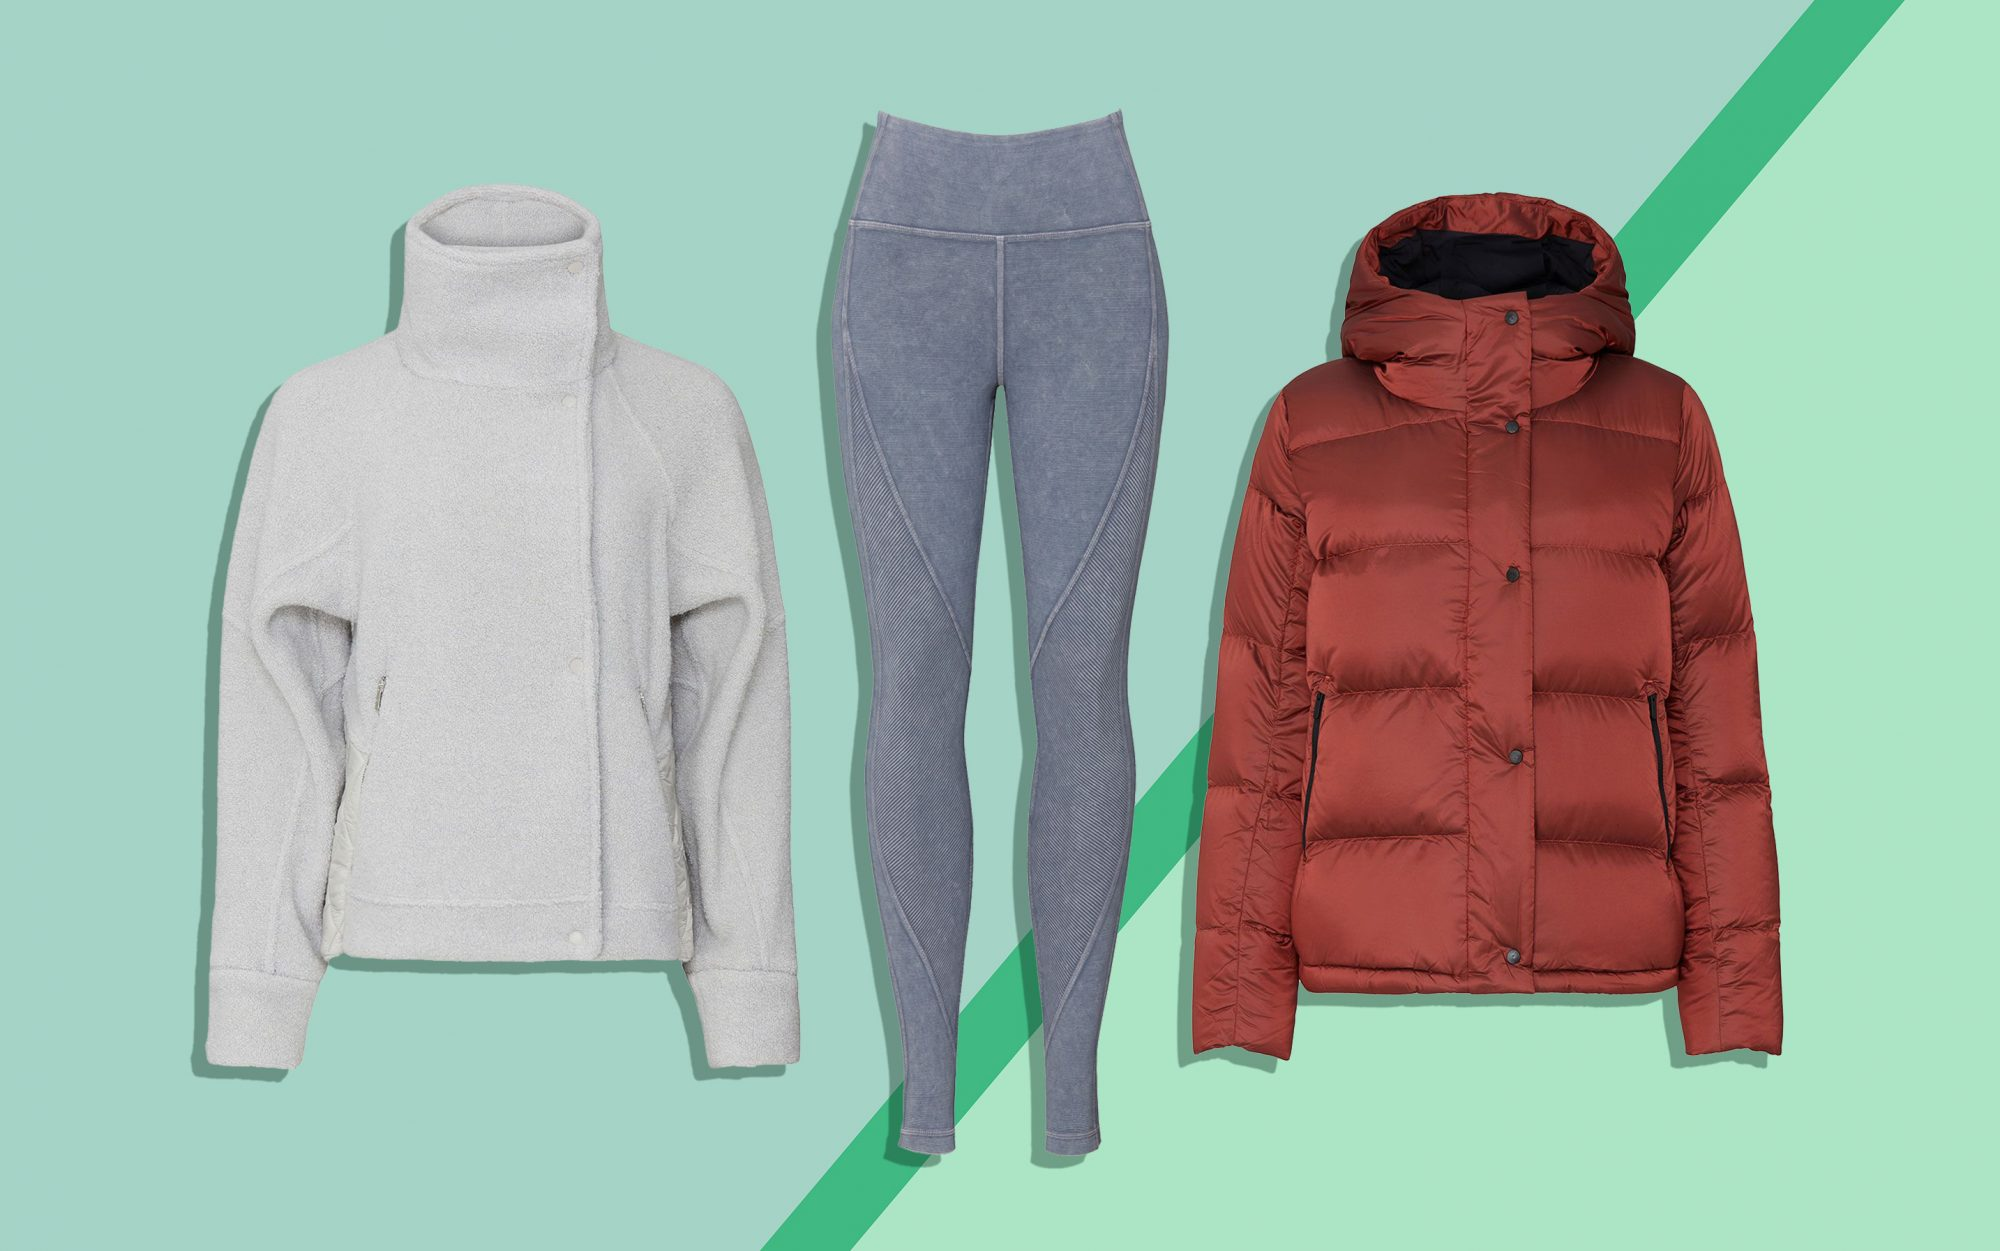 Rent the Runway Launches Athleisure and Ski Apparel